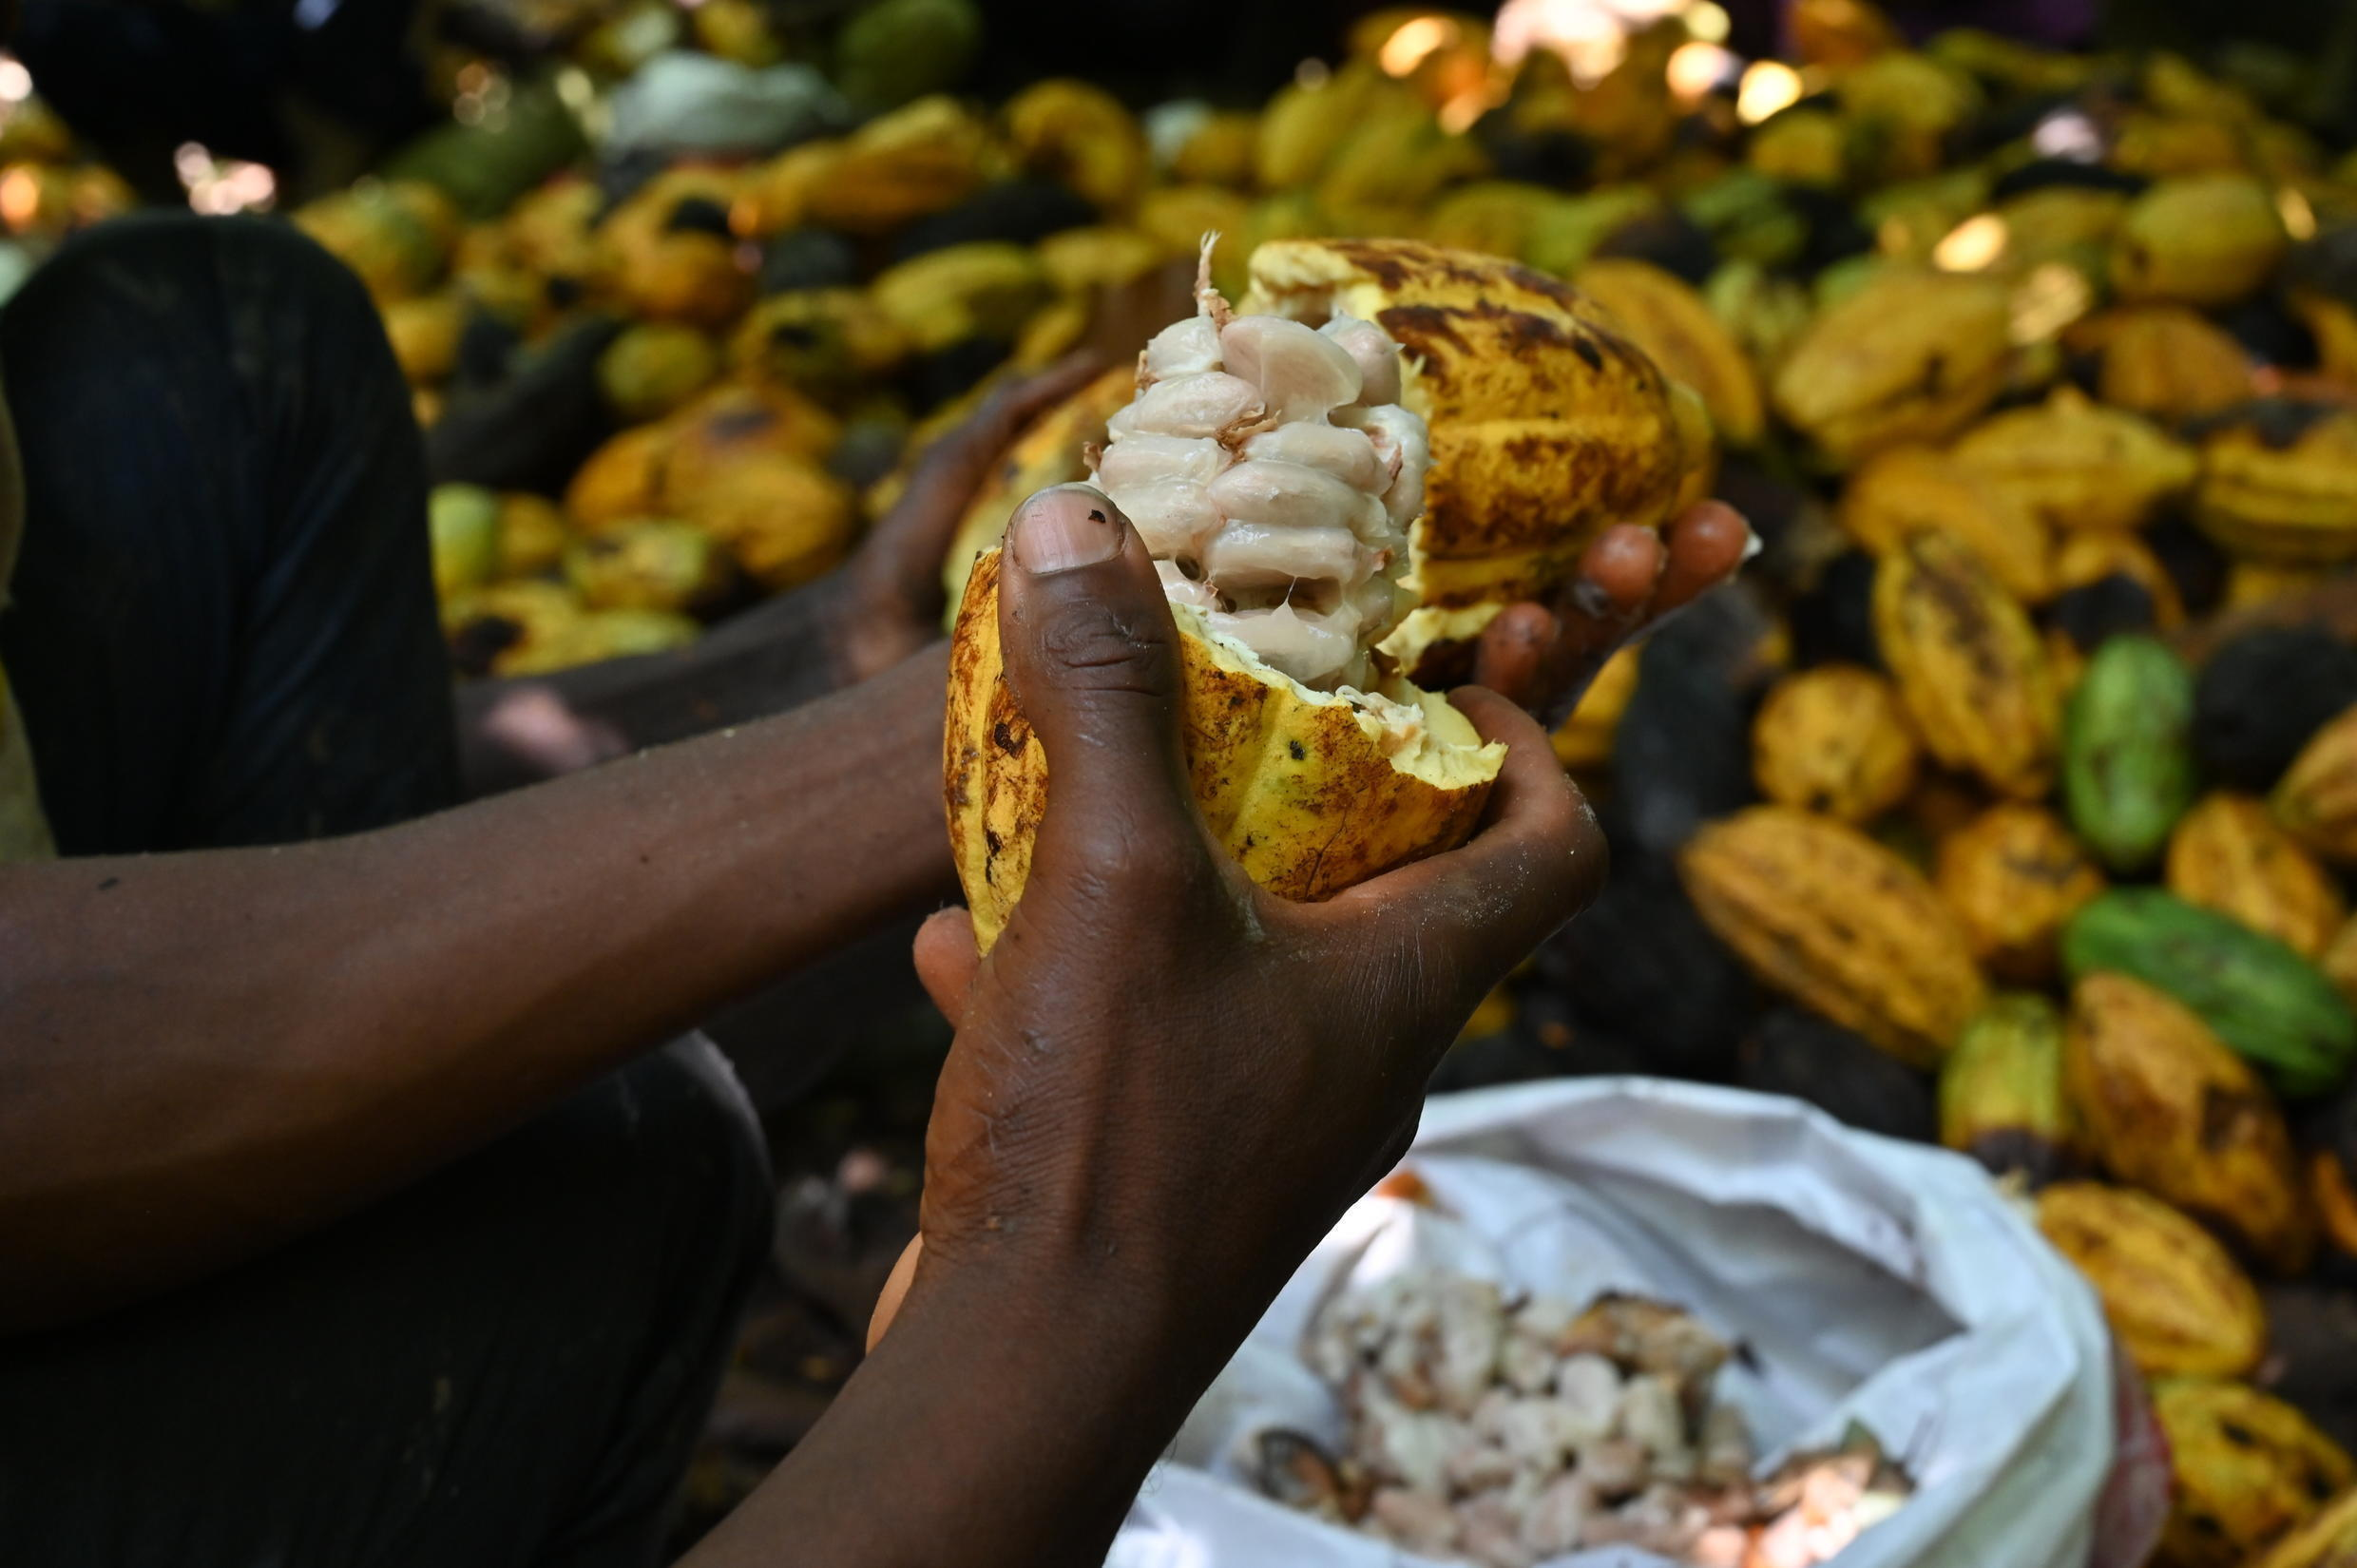 Ivory Coast is the biggest producer of cacao beans, the treasure that lies inside the pod of the Theobrama cacao tree